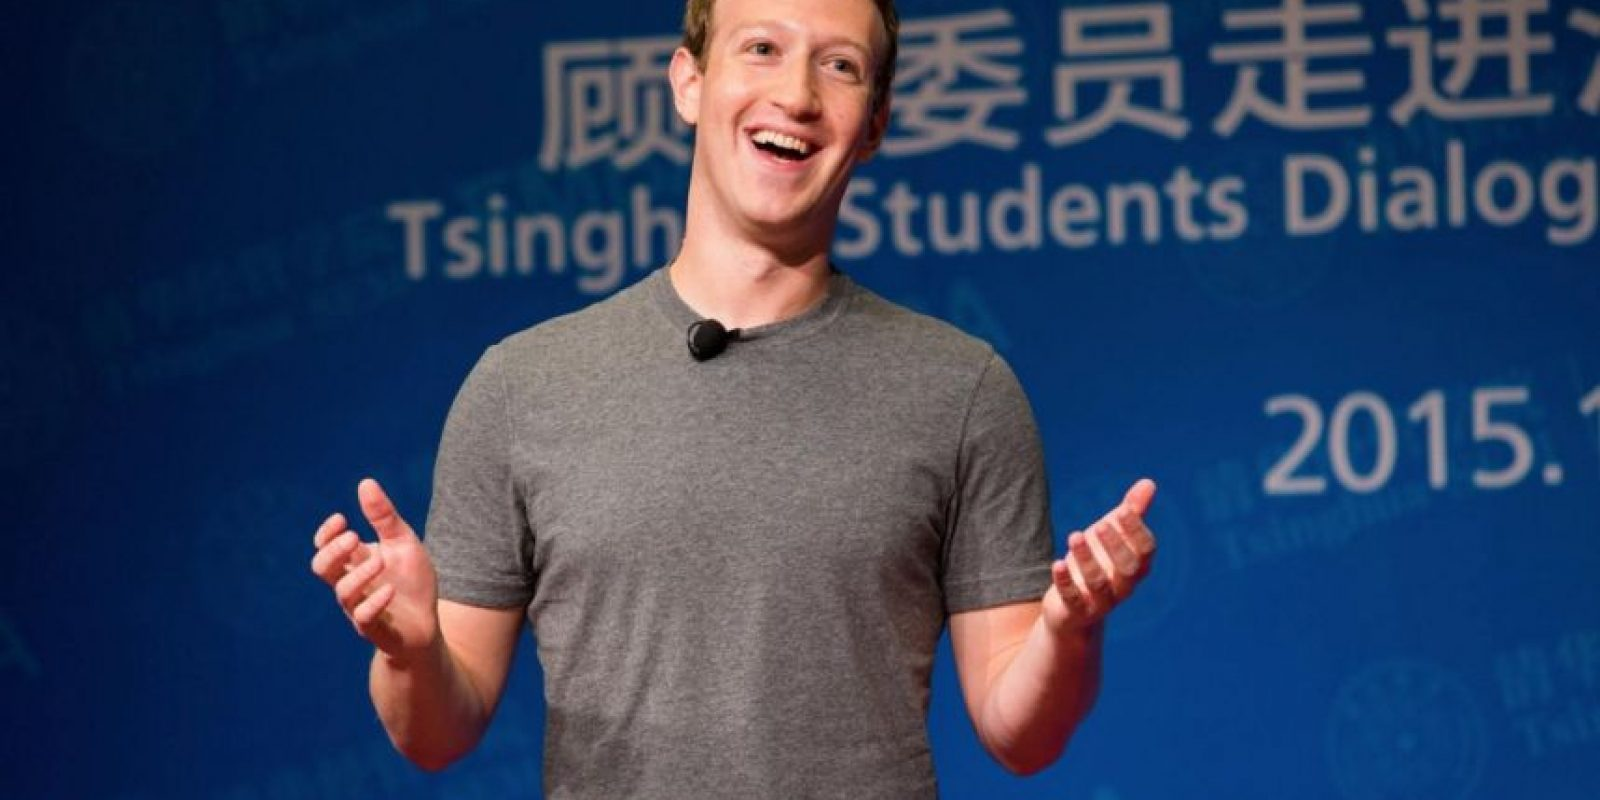 Mark en un evento en China en octubre de 2015. Foto: Vía facebook.com/zuck